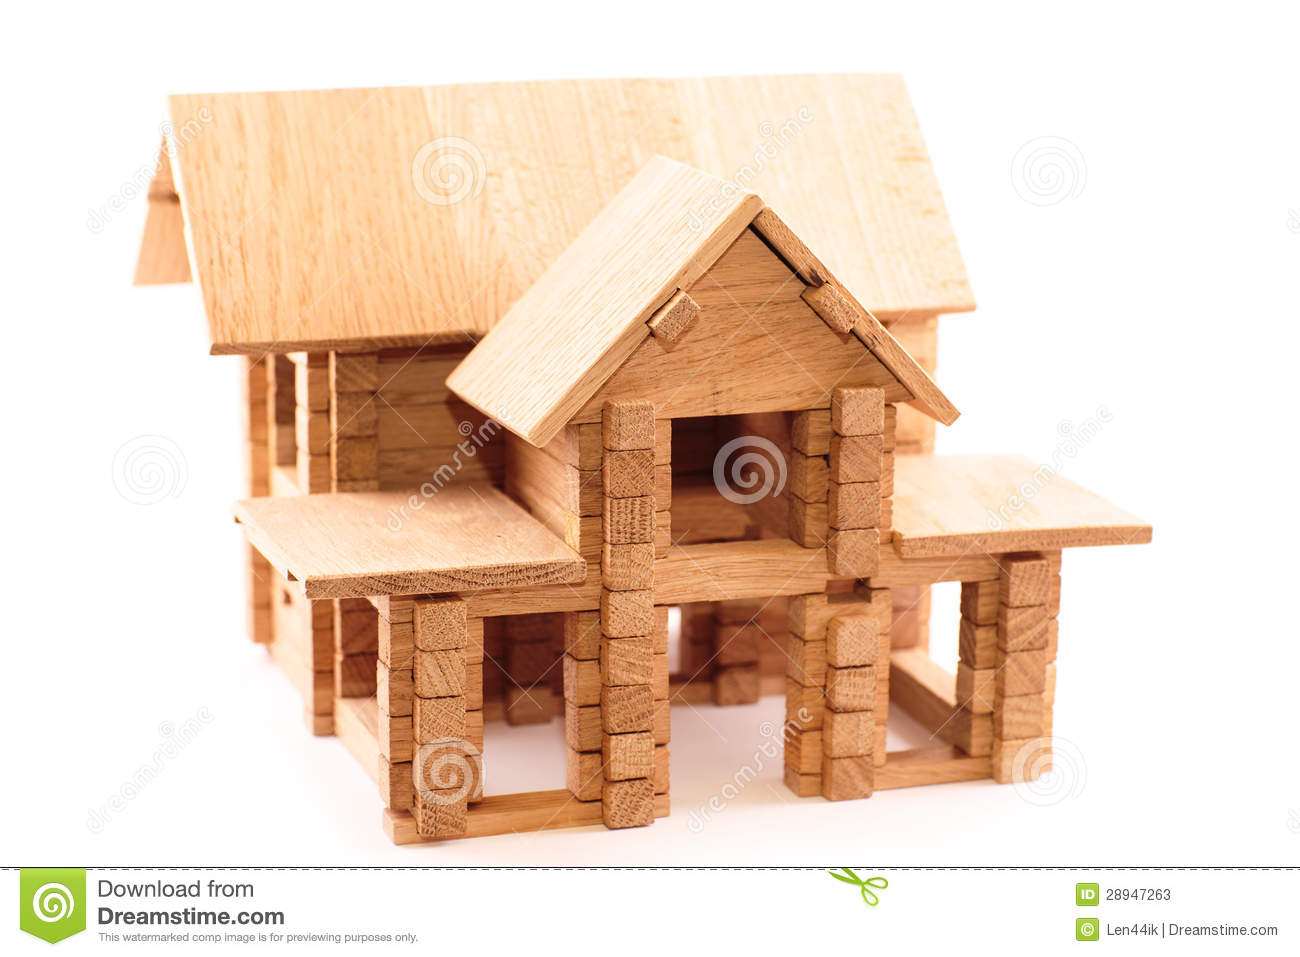 Wooden Toy House | www.woodworking.bofusfocus.com